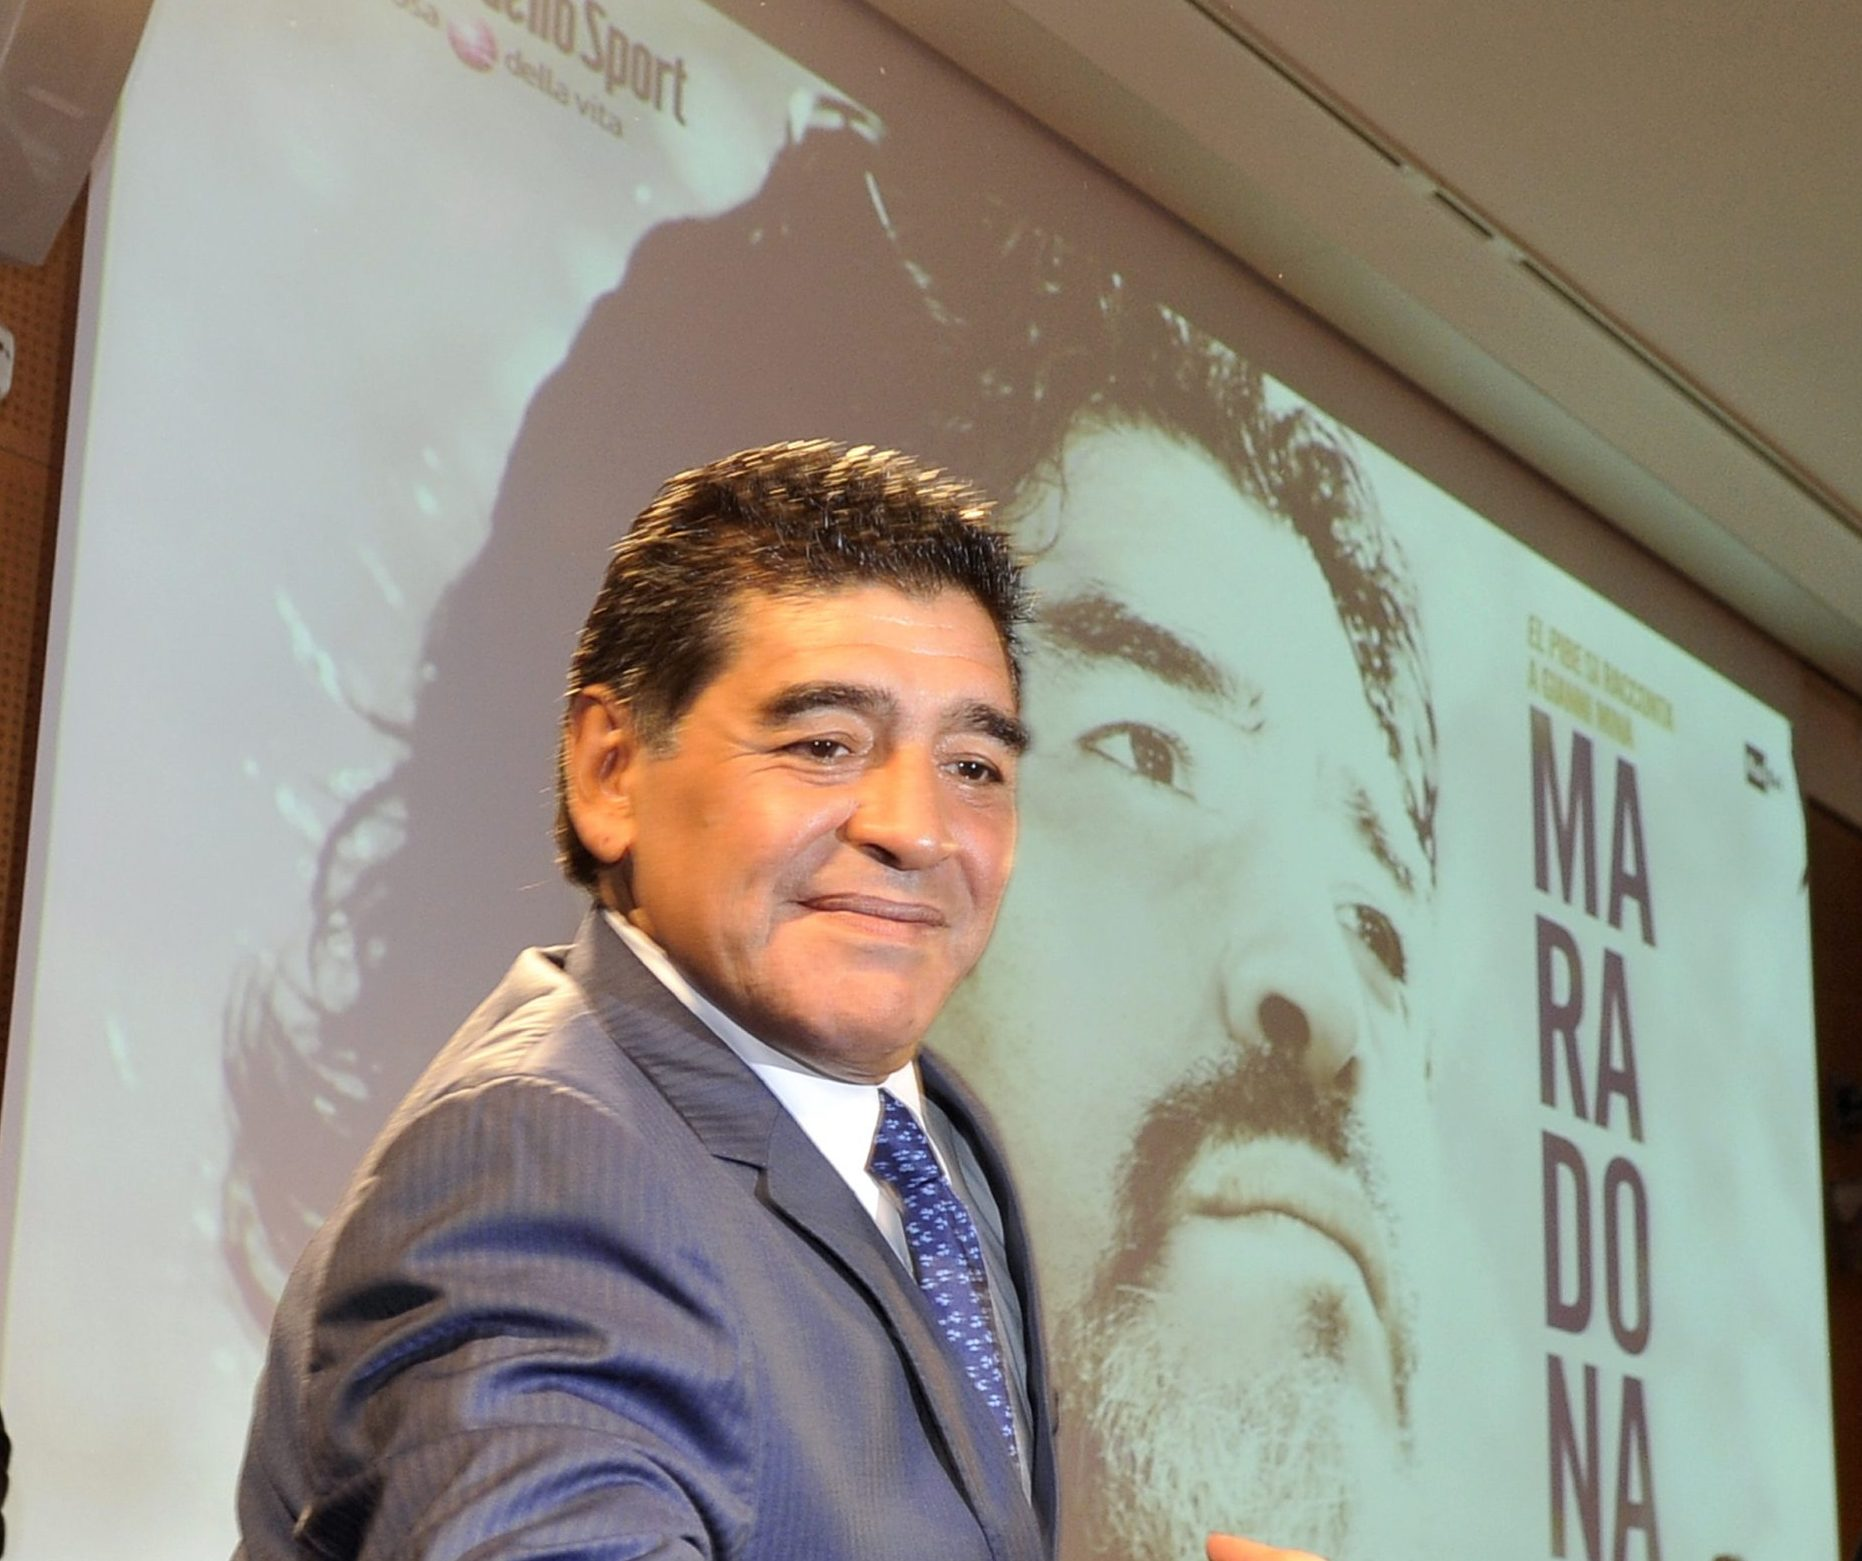 """Diego Maradona wearing a grey suit, white shirt and blue tie. He smiles. Behind him is a screen showing the """"Maradona"""" movie."""